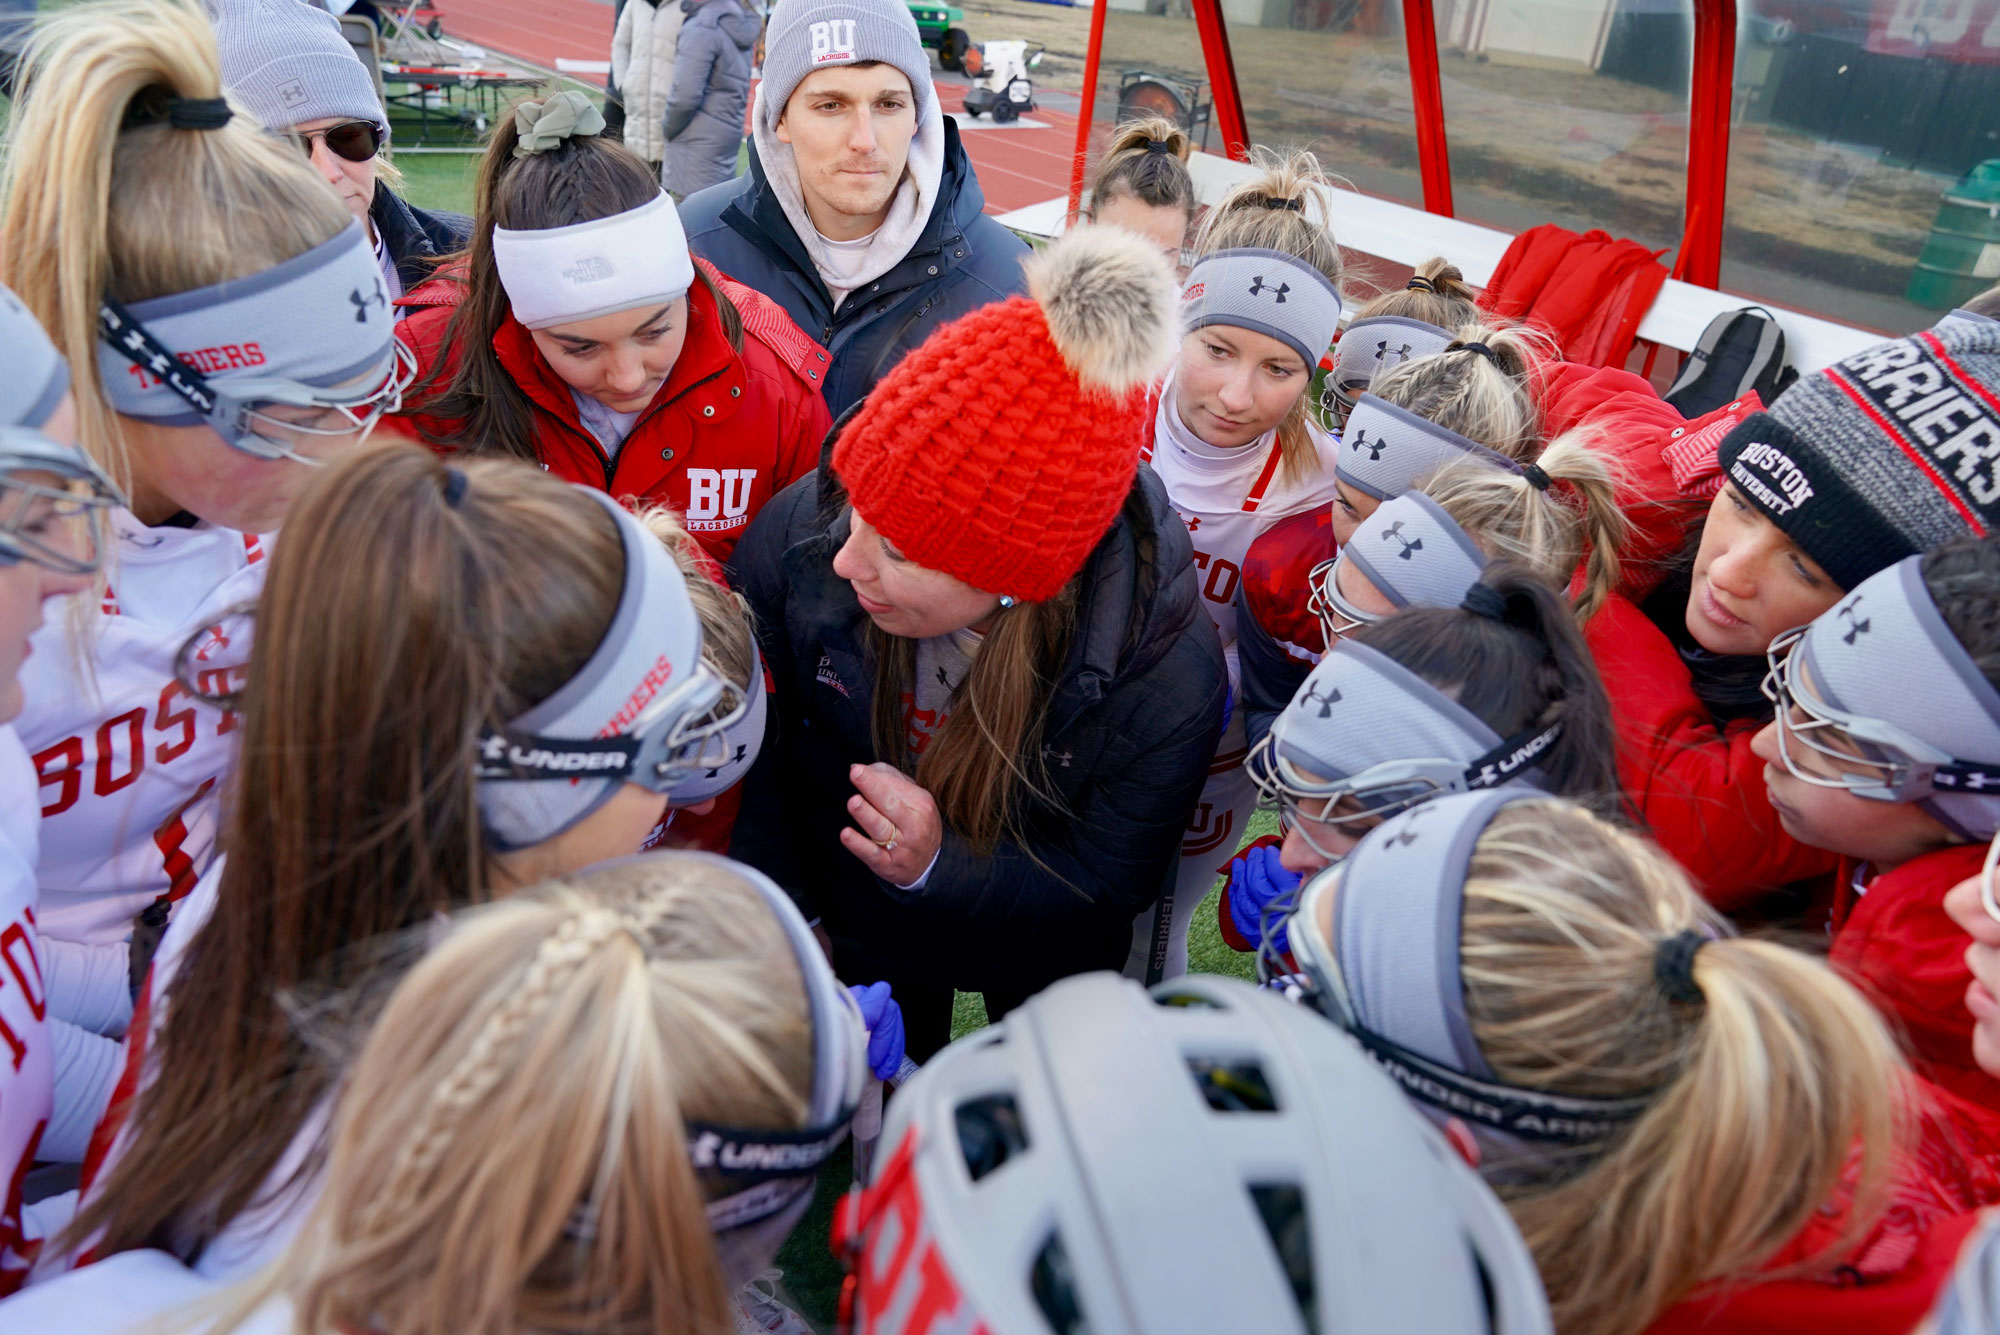 A photo of the Boston University women's lacrosse team in a huddle